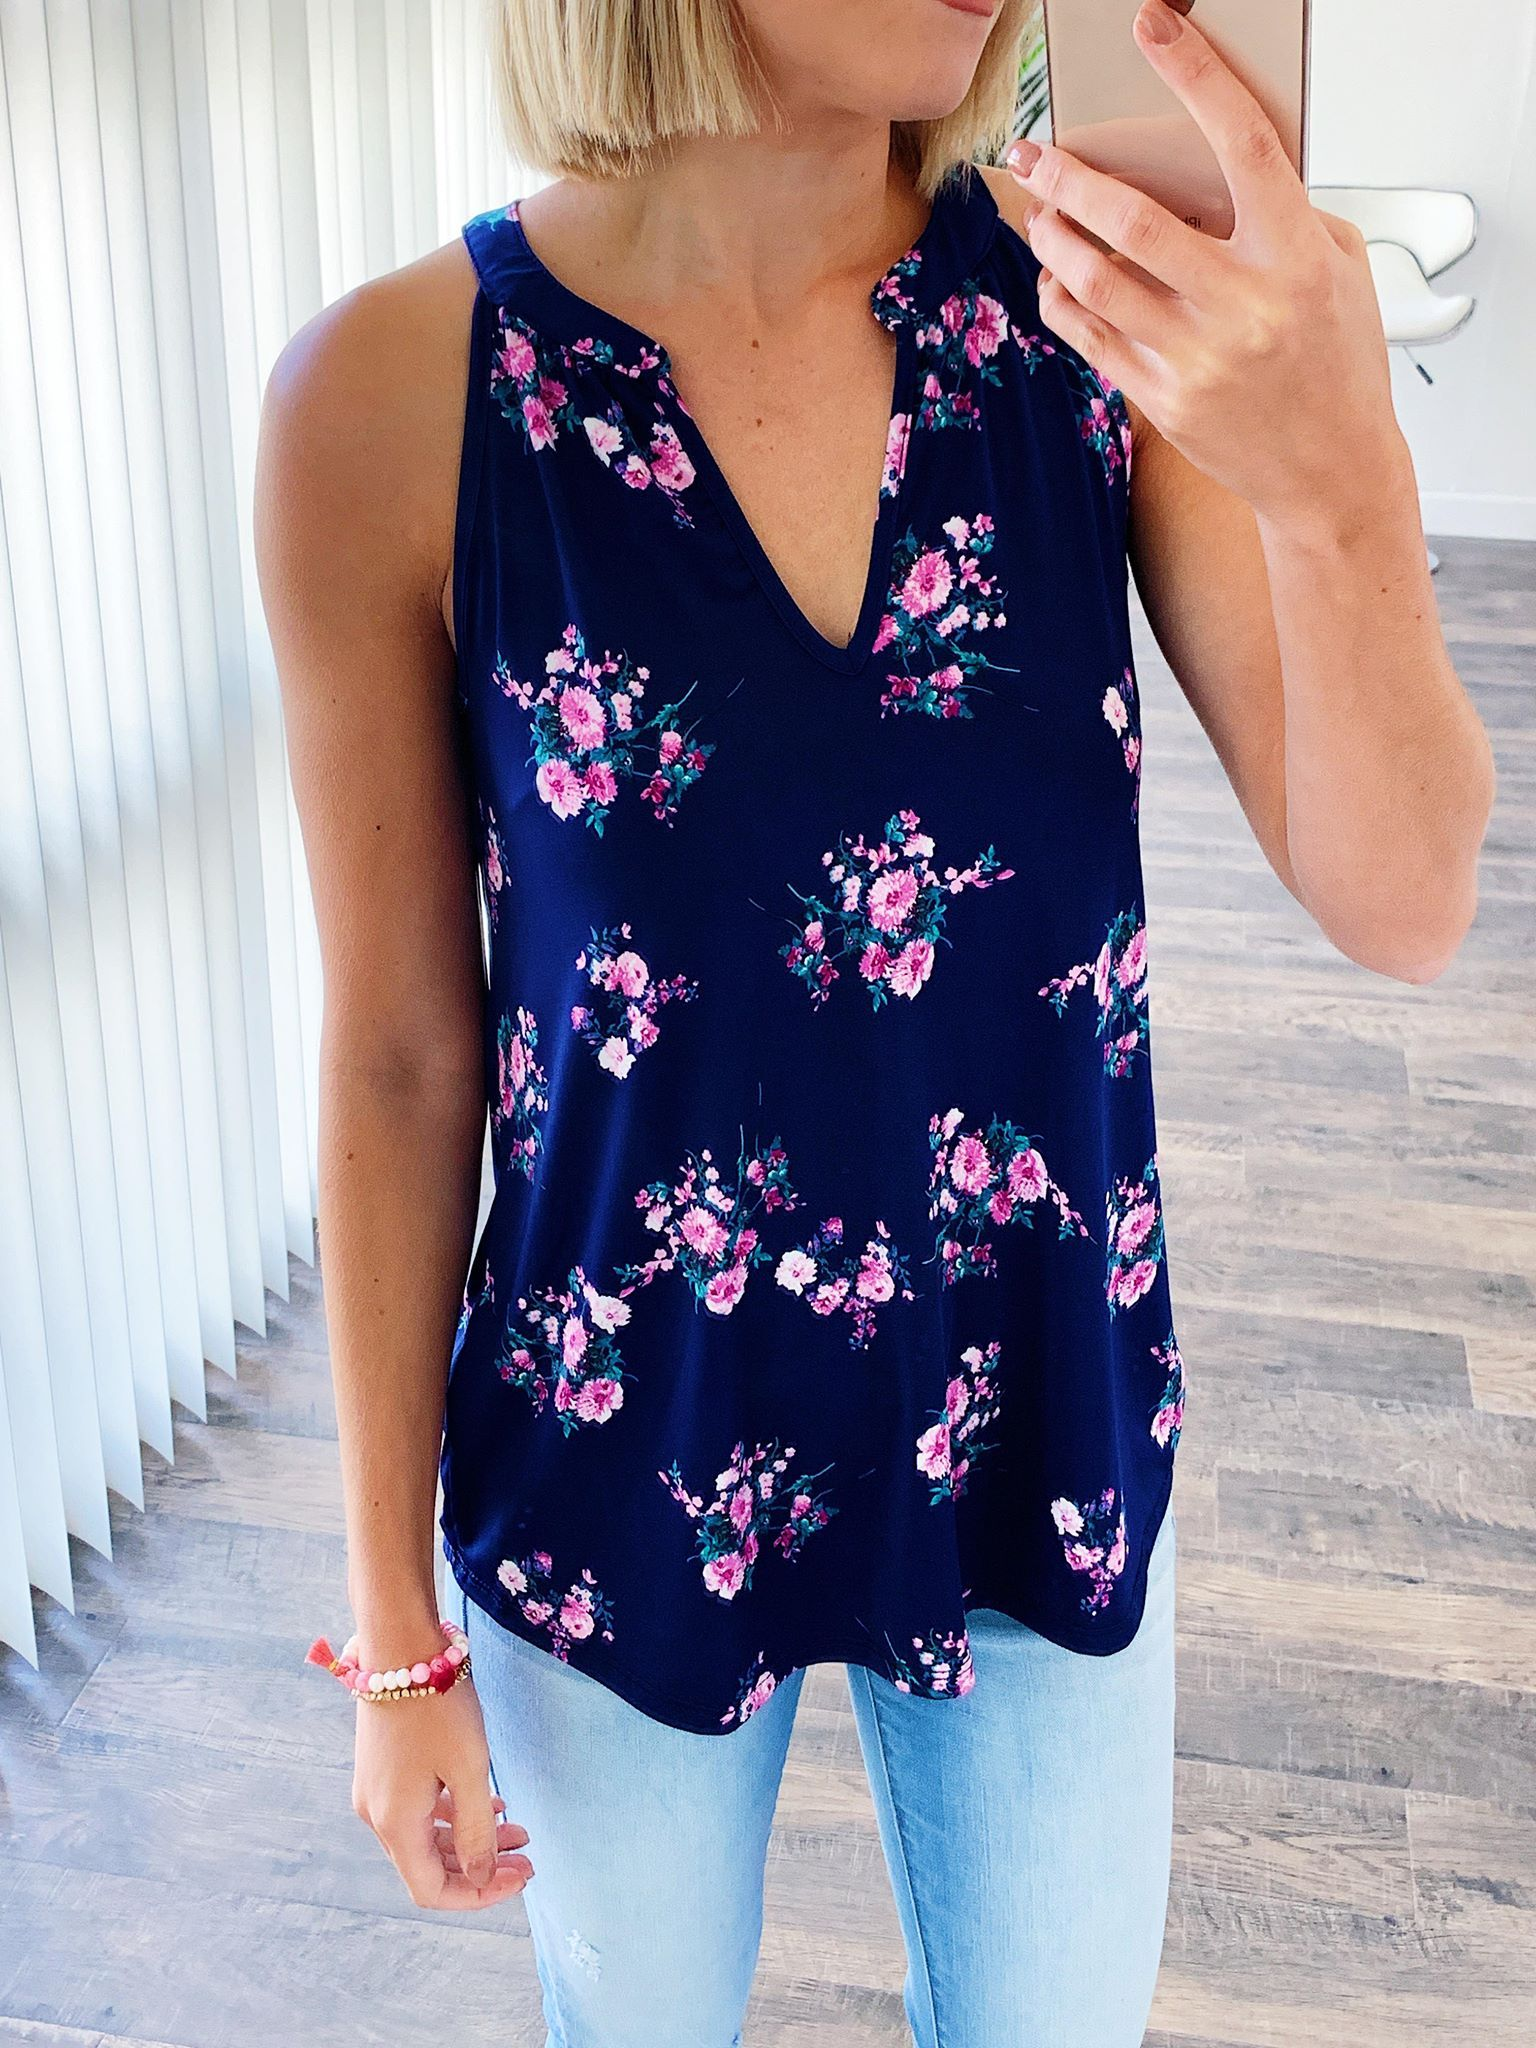 When It Comes To You Floral Tank Top- Navy